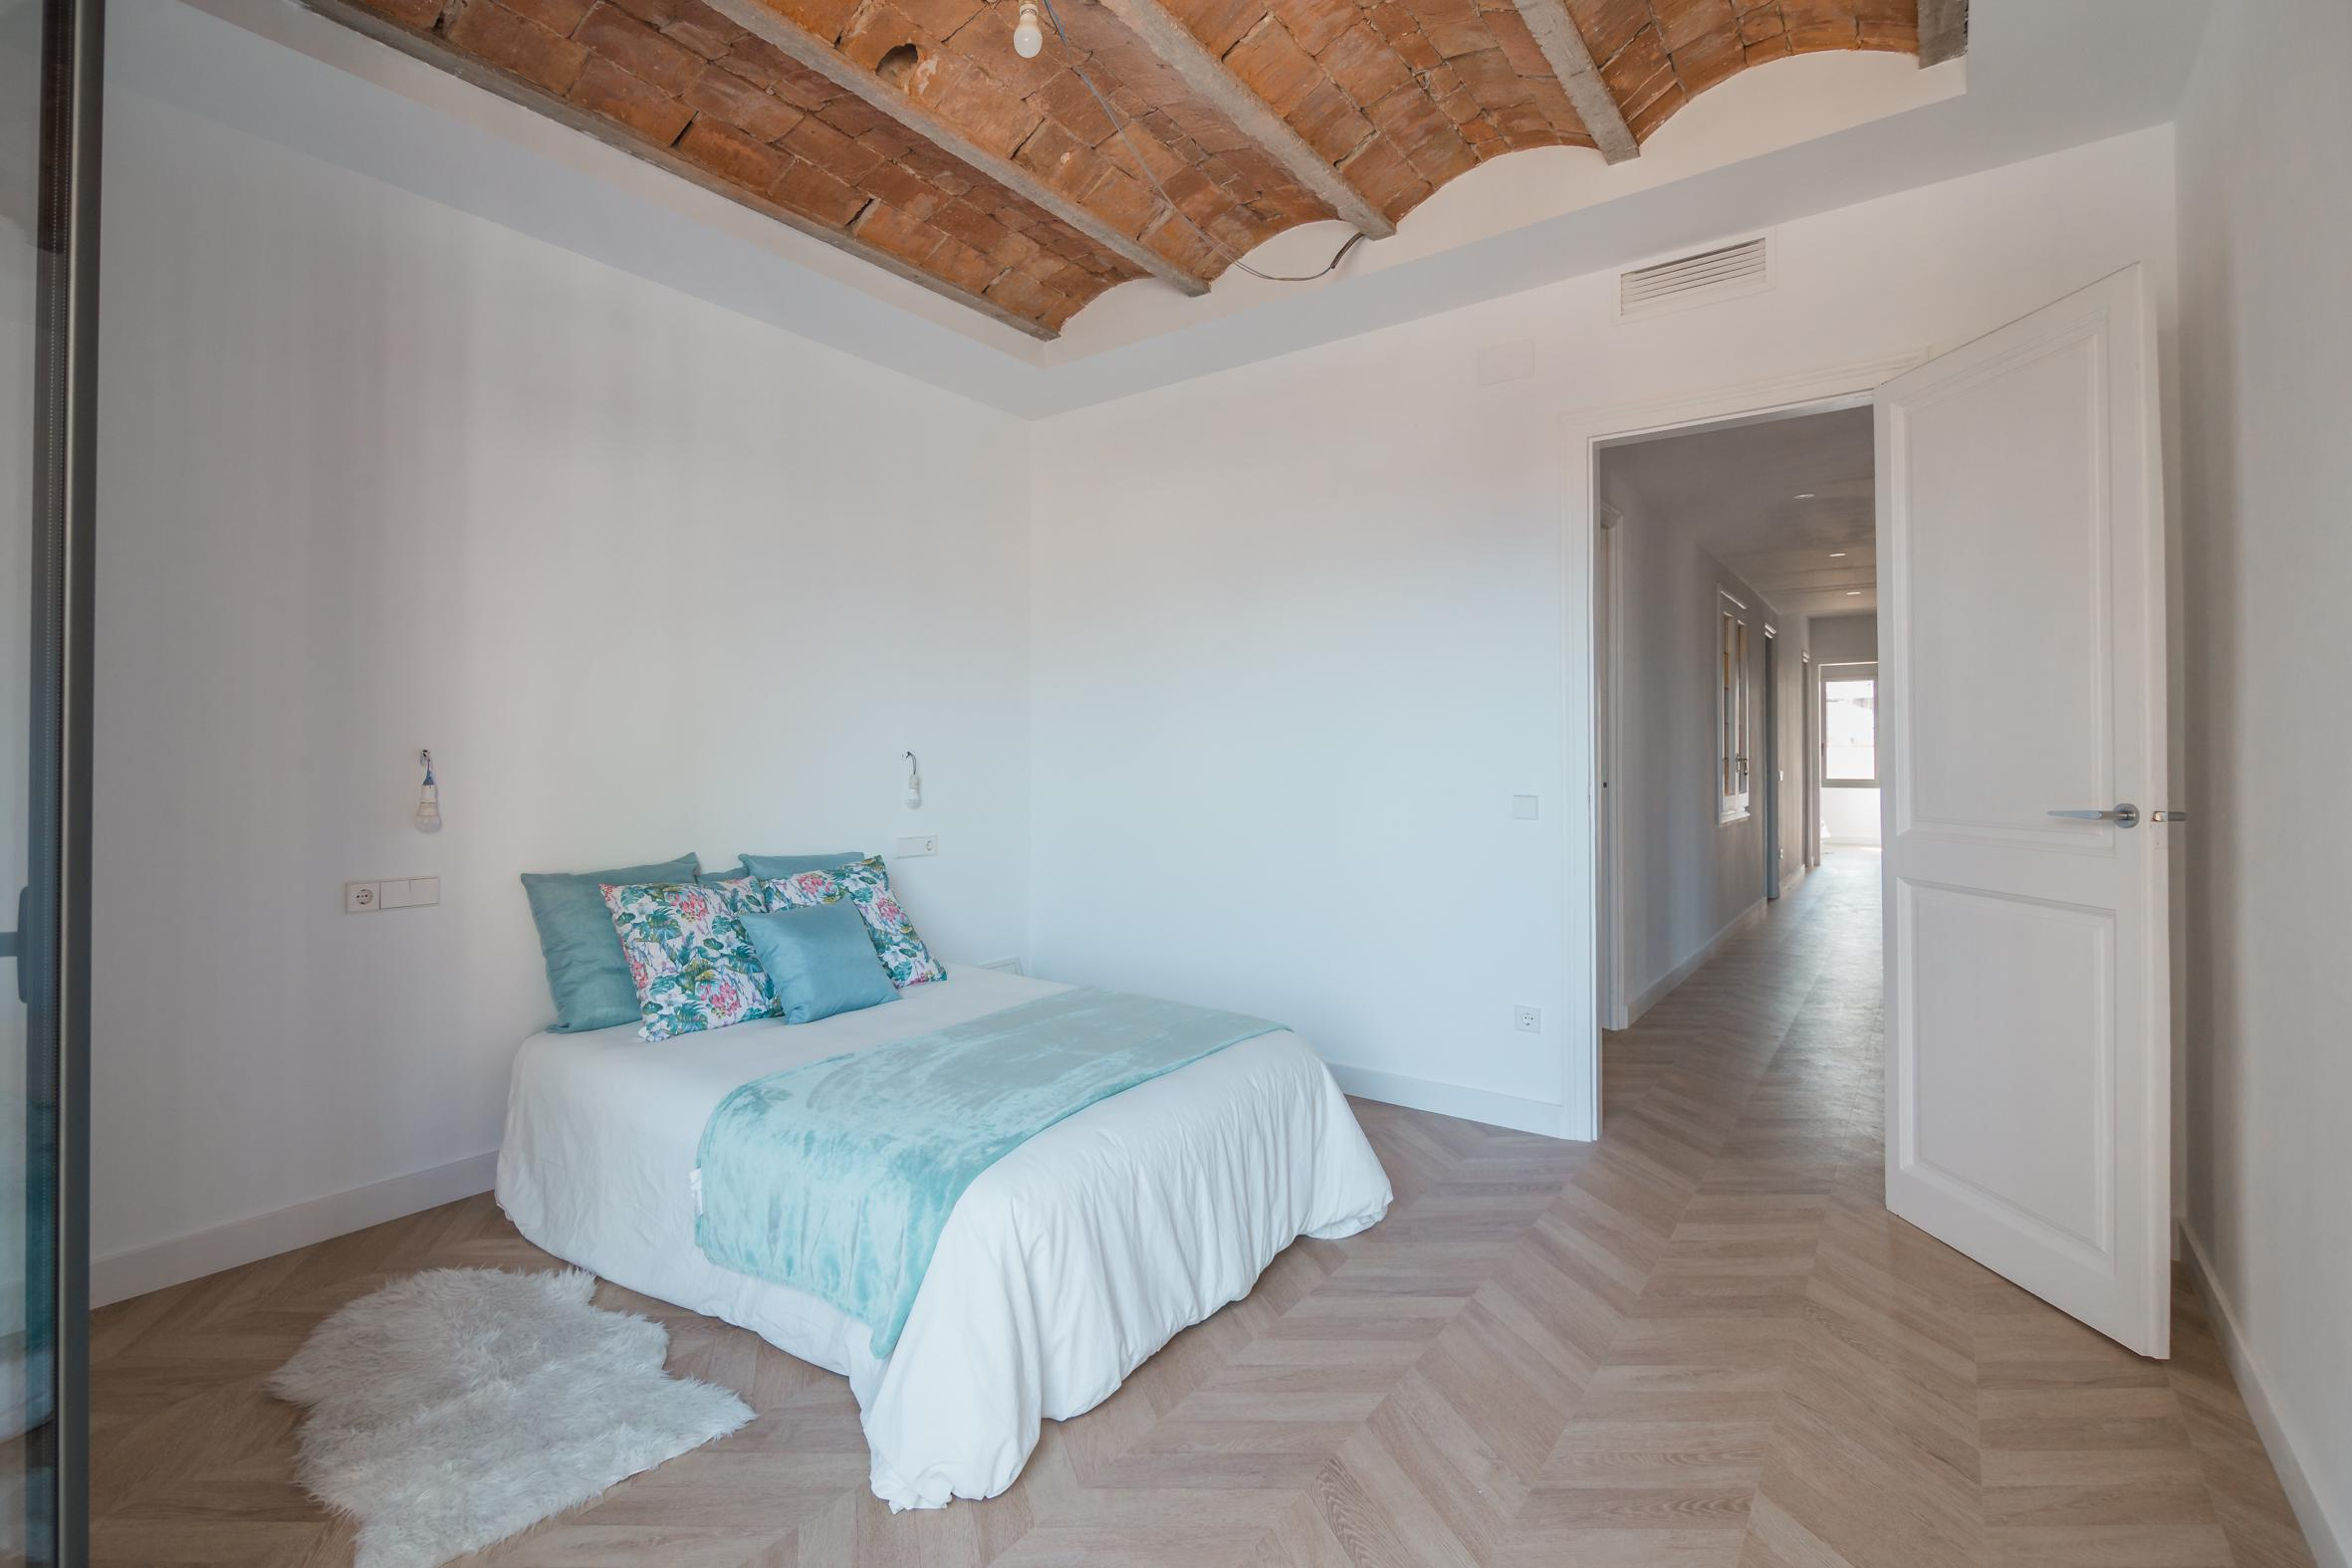 244010 Flat for sale in Ciutat Vella, Barri Gótic 15